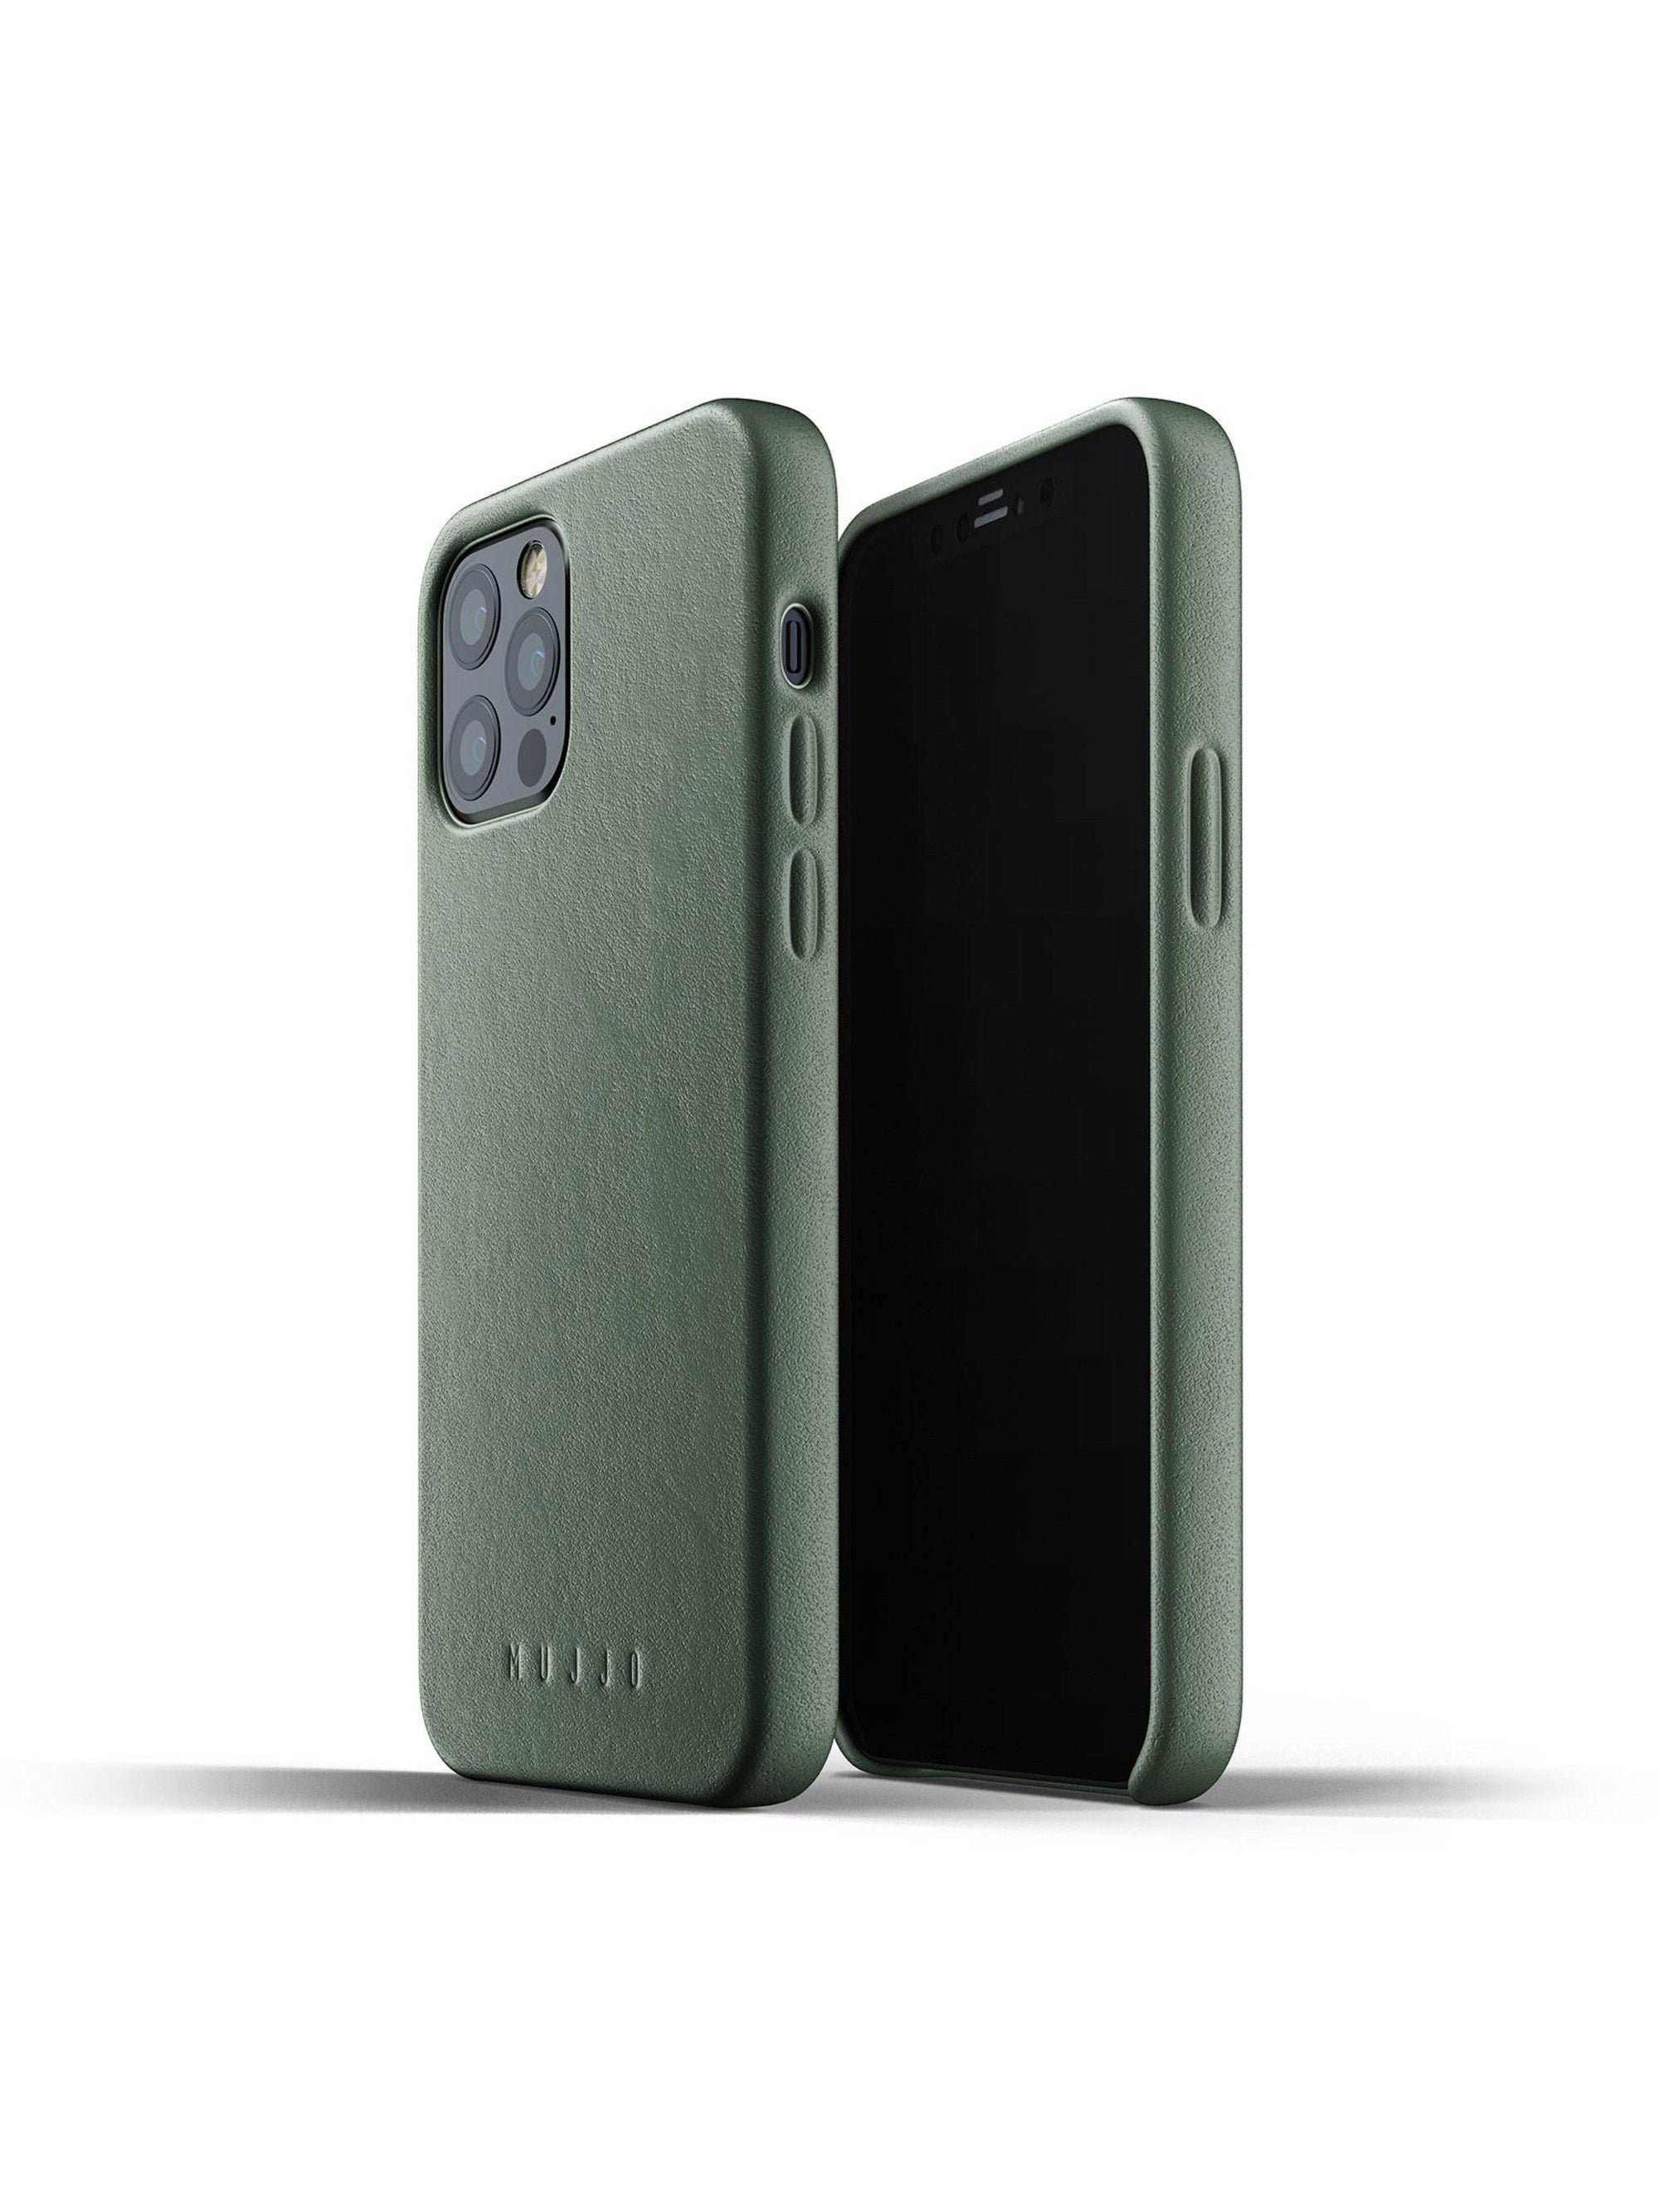 Mujjo Full Leather Case for iPhone 12 & 12 Pro Slate Green